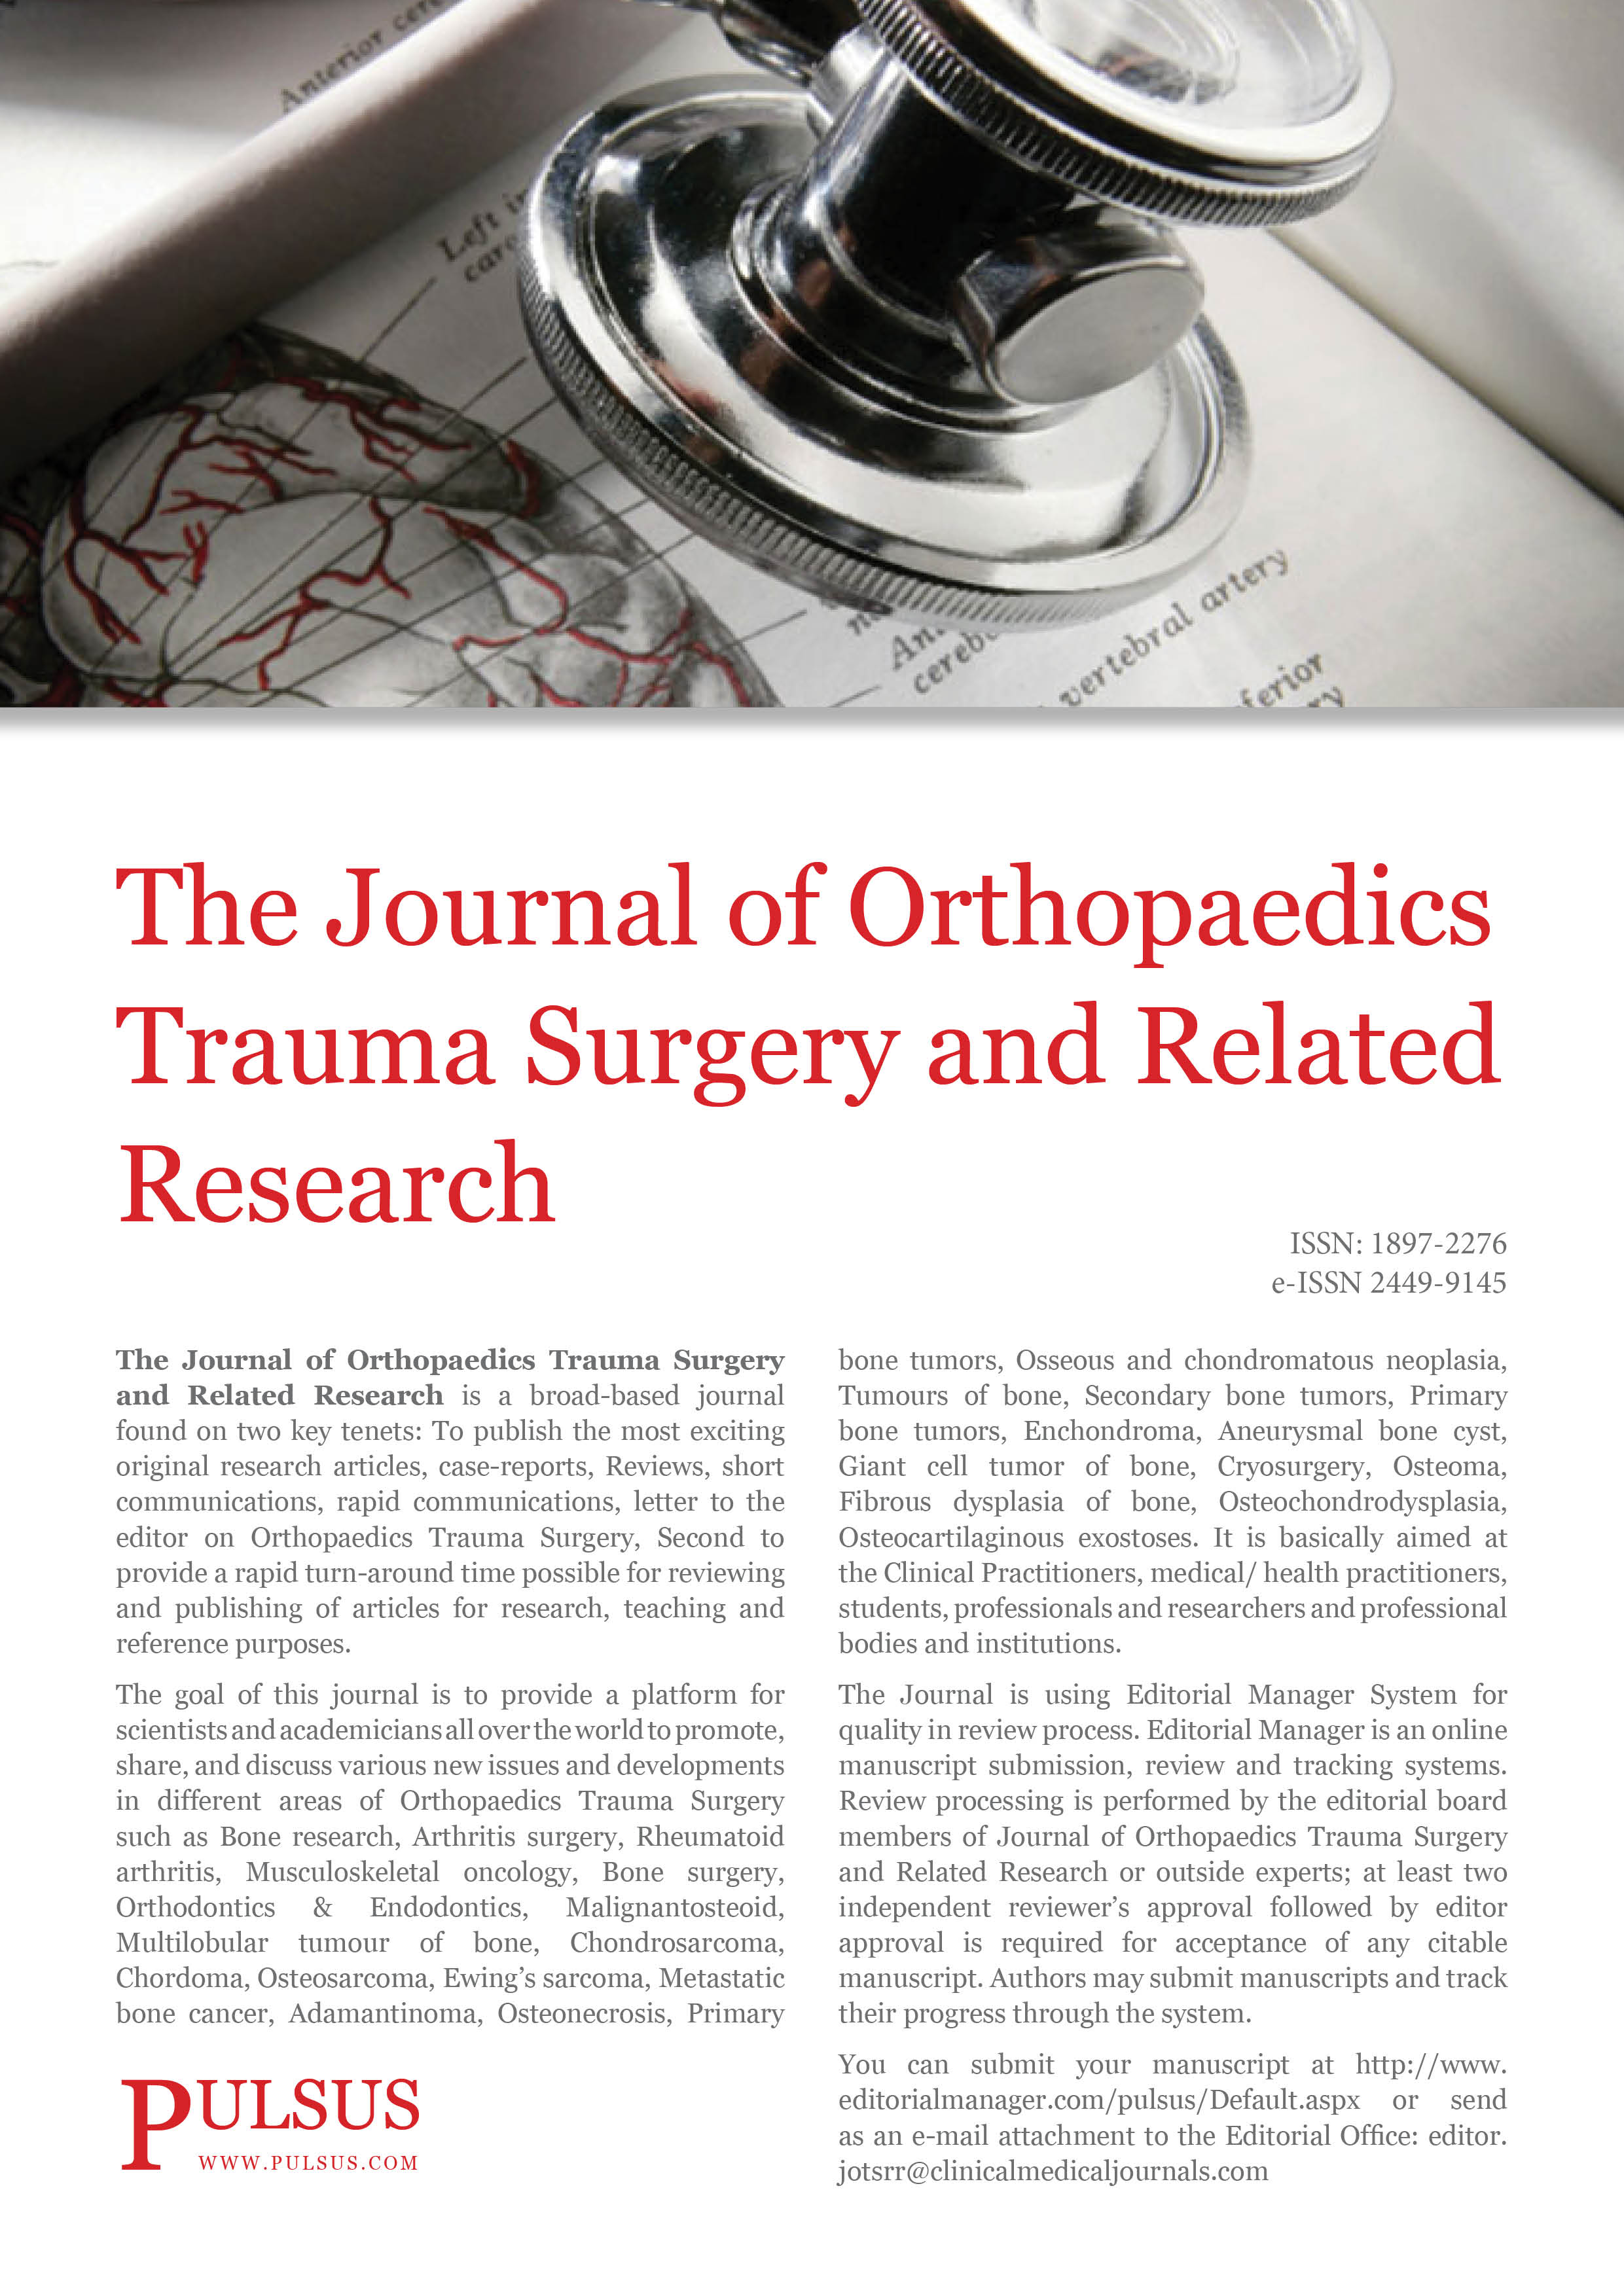 Journal of Orthopaedics Trauma Surgery and Related Research